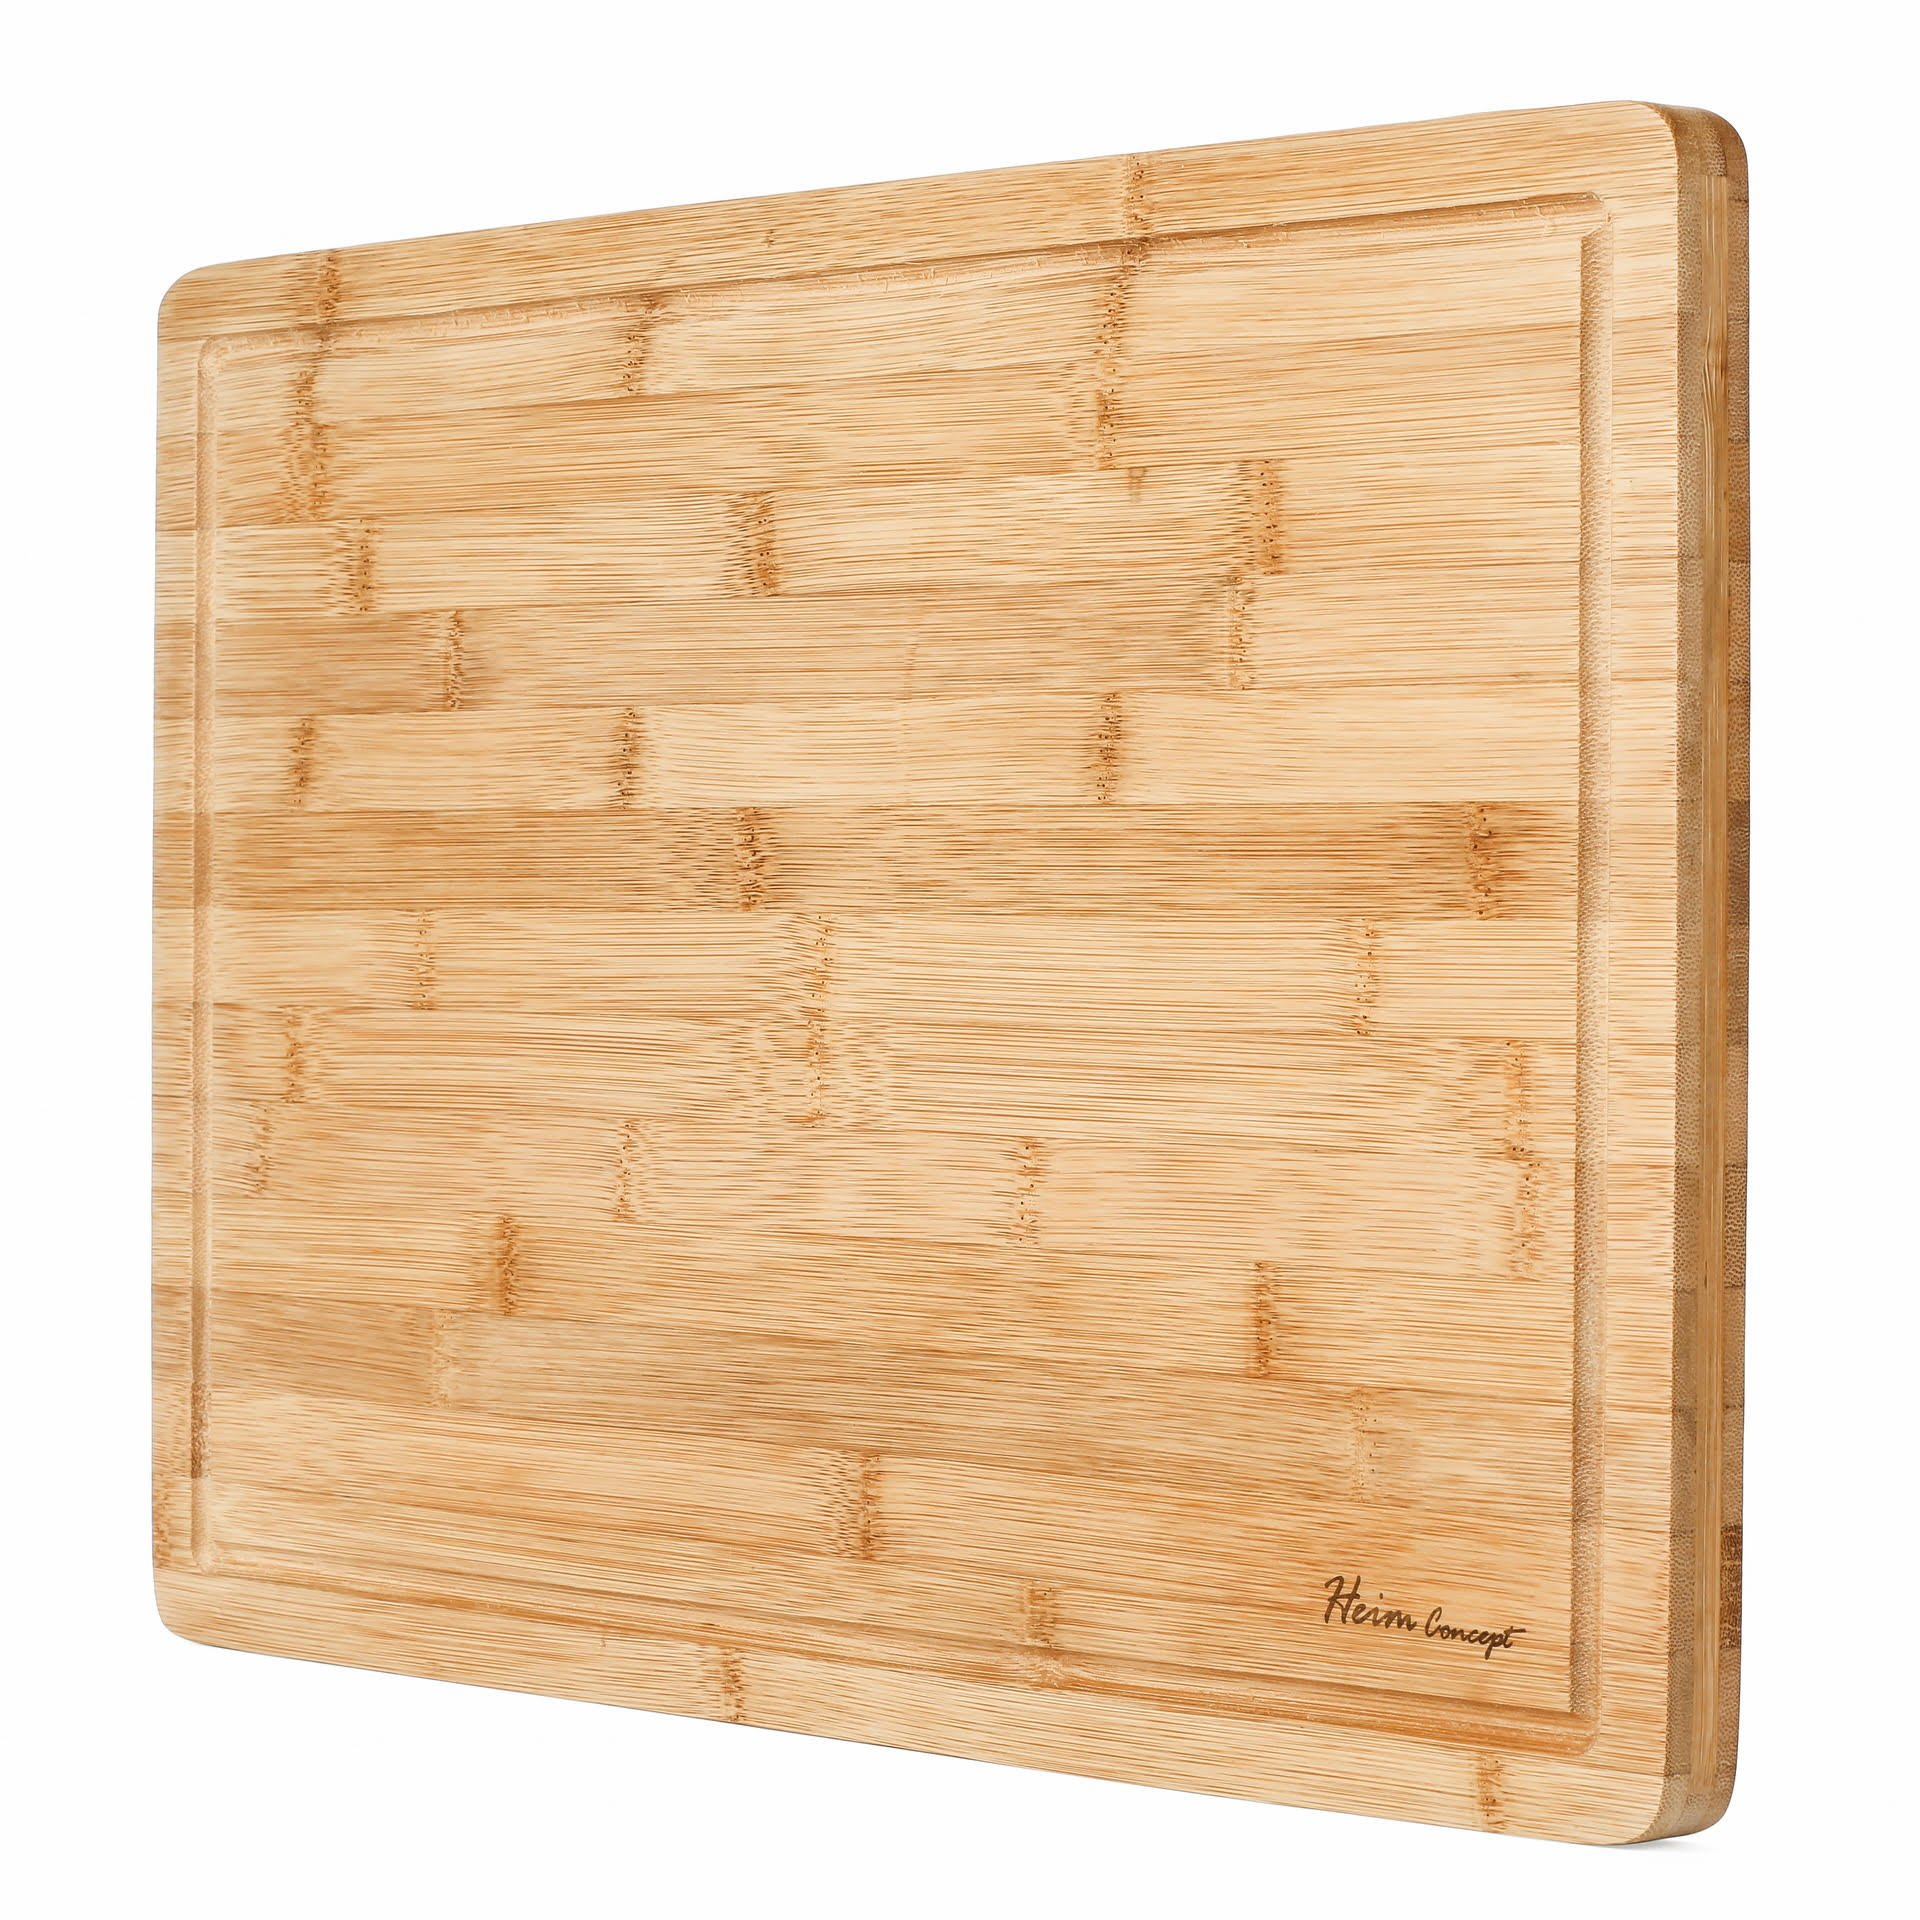 Premium Organic Bamboo [ HEIM CONCEPT ] Extra Large Cutting Board and Serving Tray with Drip Groove [ 18'' x 12'' x ¾'' inch Thick ] Eco-Friendly Thick Strong Bamboo Kitchenware